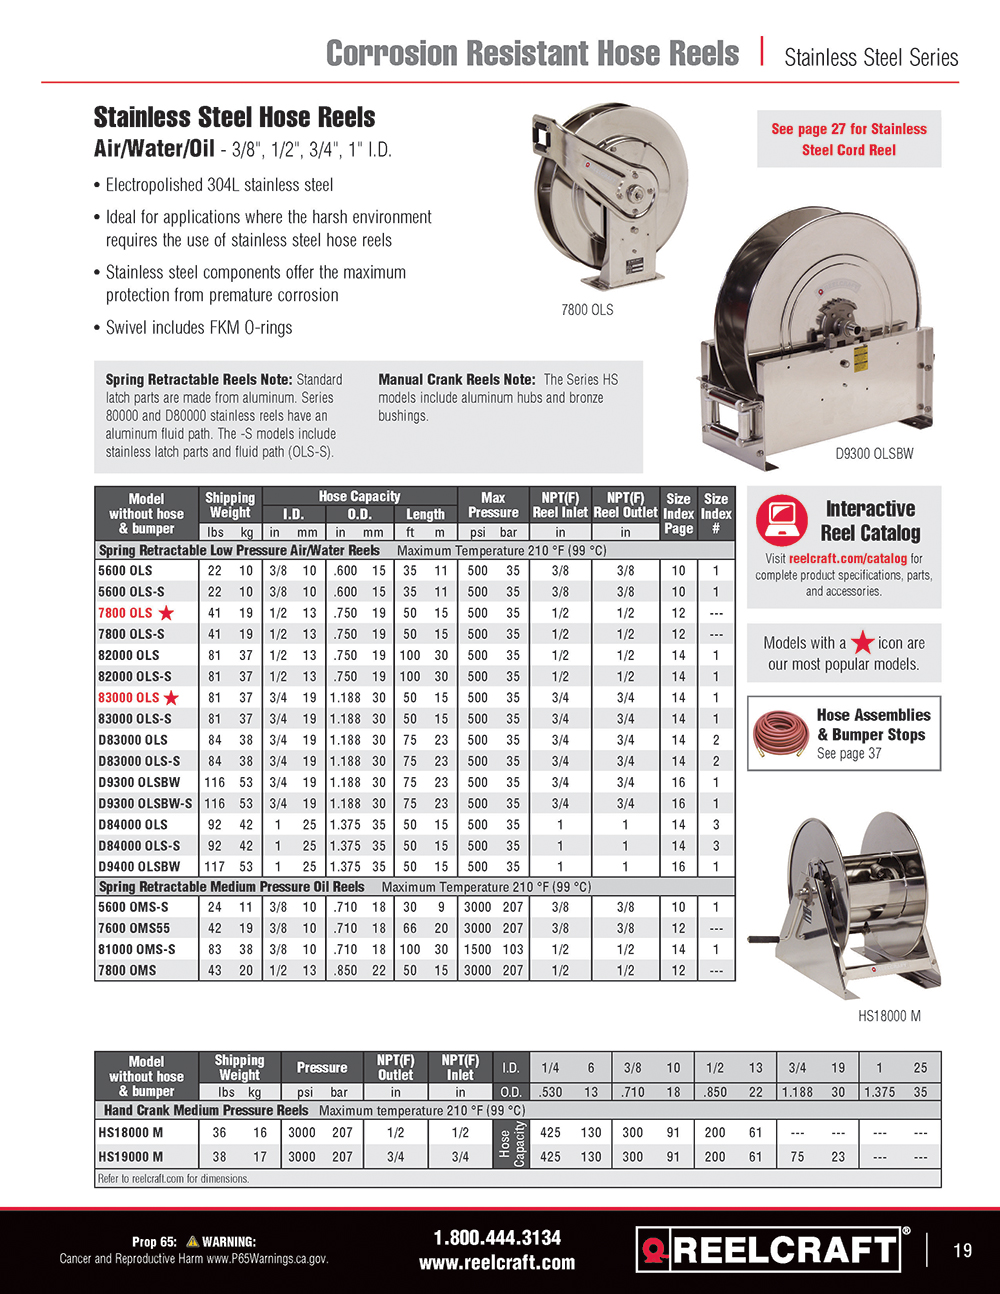 Reelcraft Catalog Page 19 - Stainless Steel Hose Reels